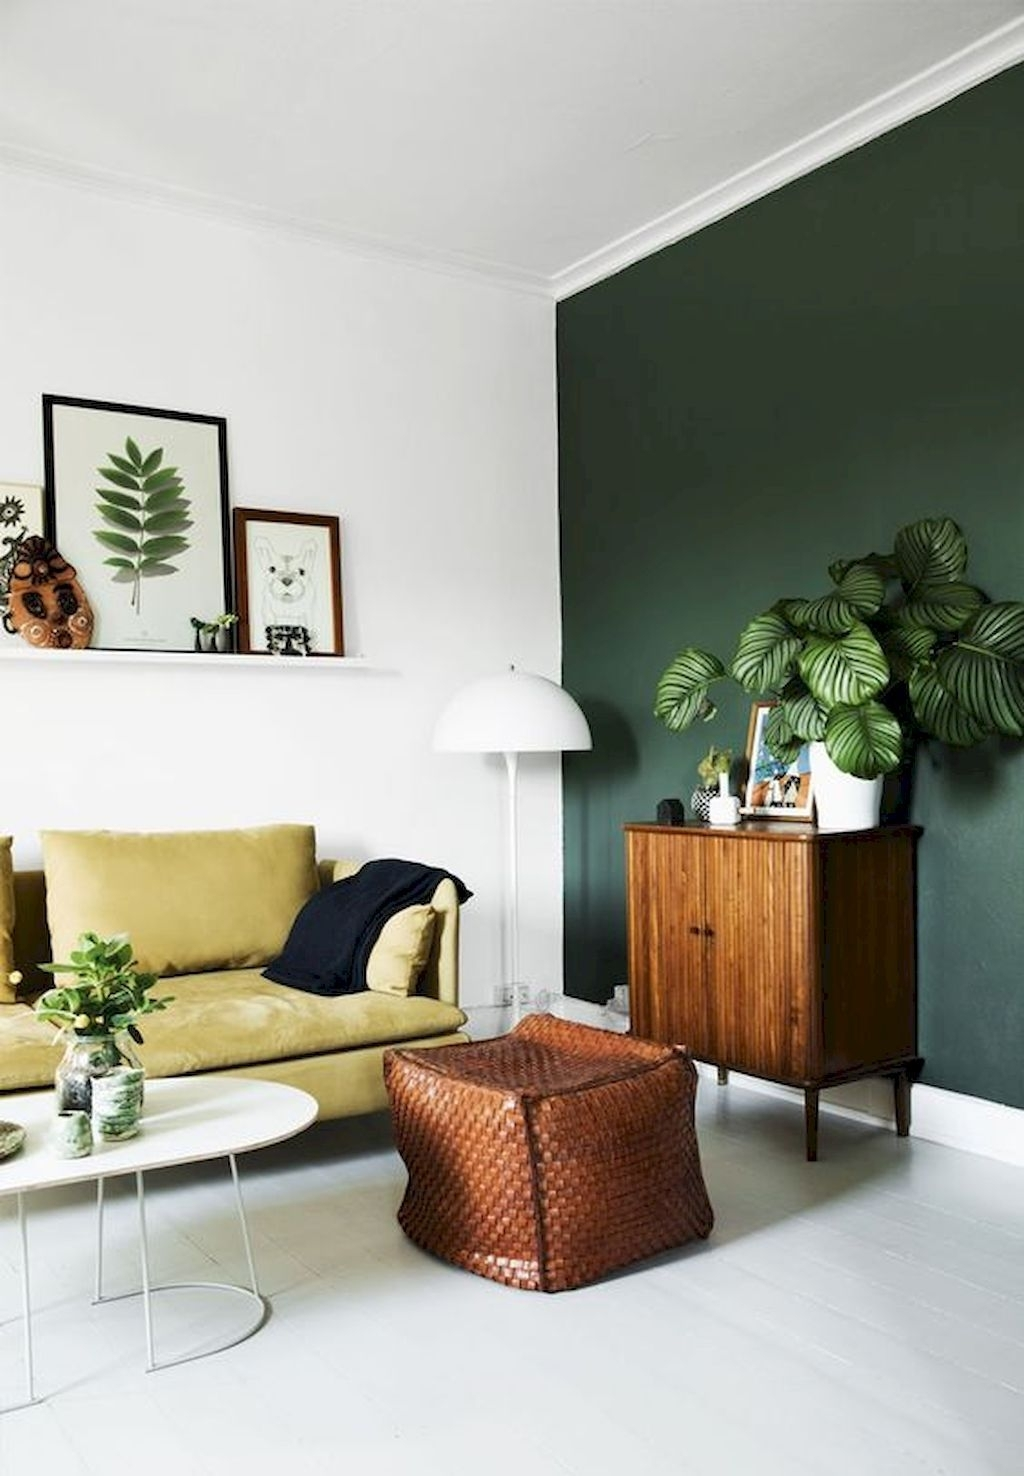 85 Cool Scandinavian Style Living Room Decor And Design Ideas Inside 2018 Green Wall Accents (View 6 of 15)